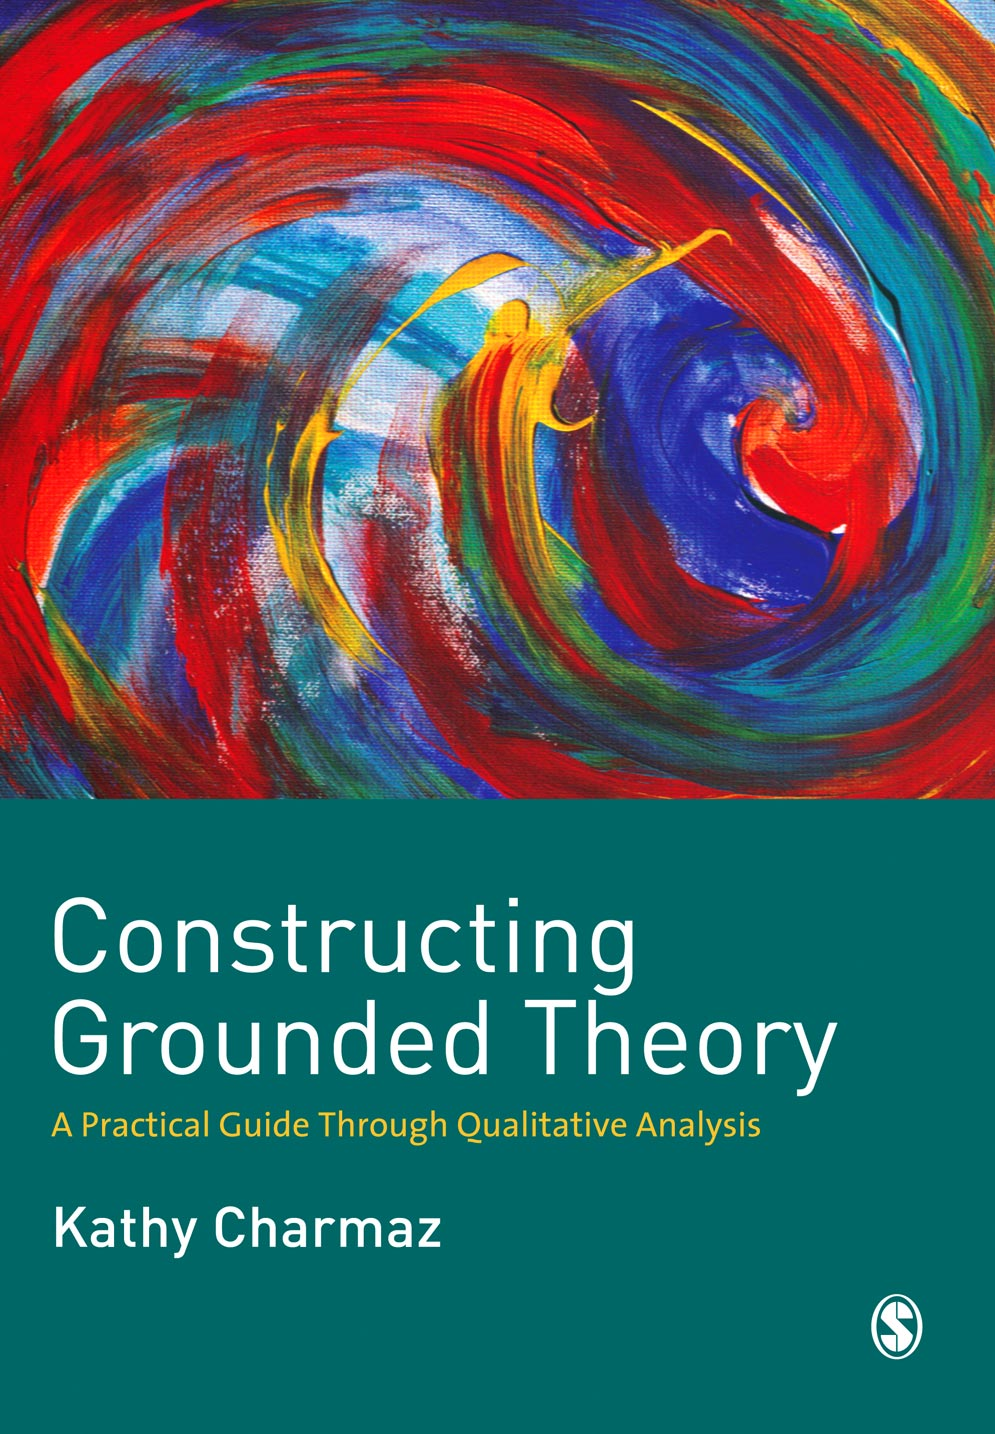 Constructing Grounded Theory A Practical Guide through Qualitative Analysis